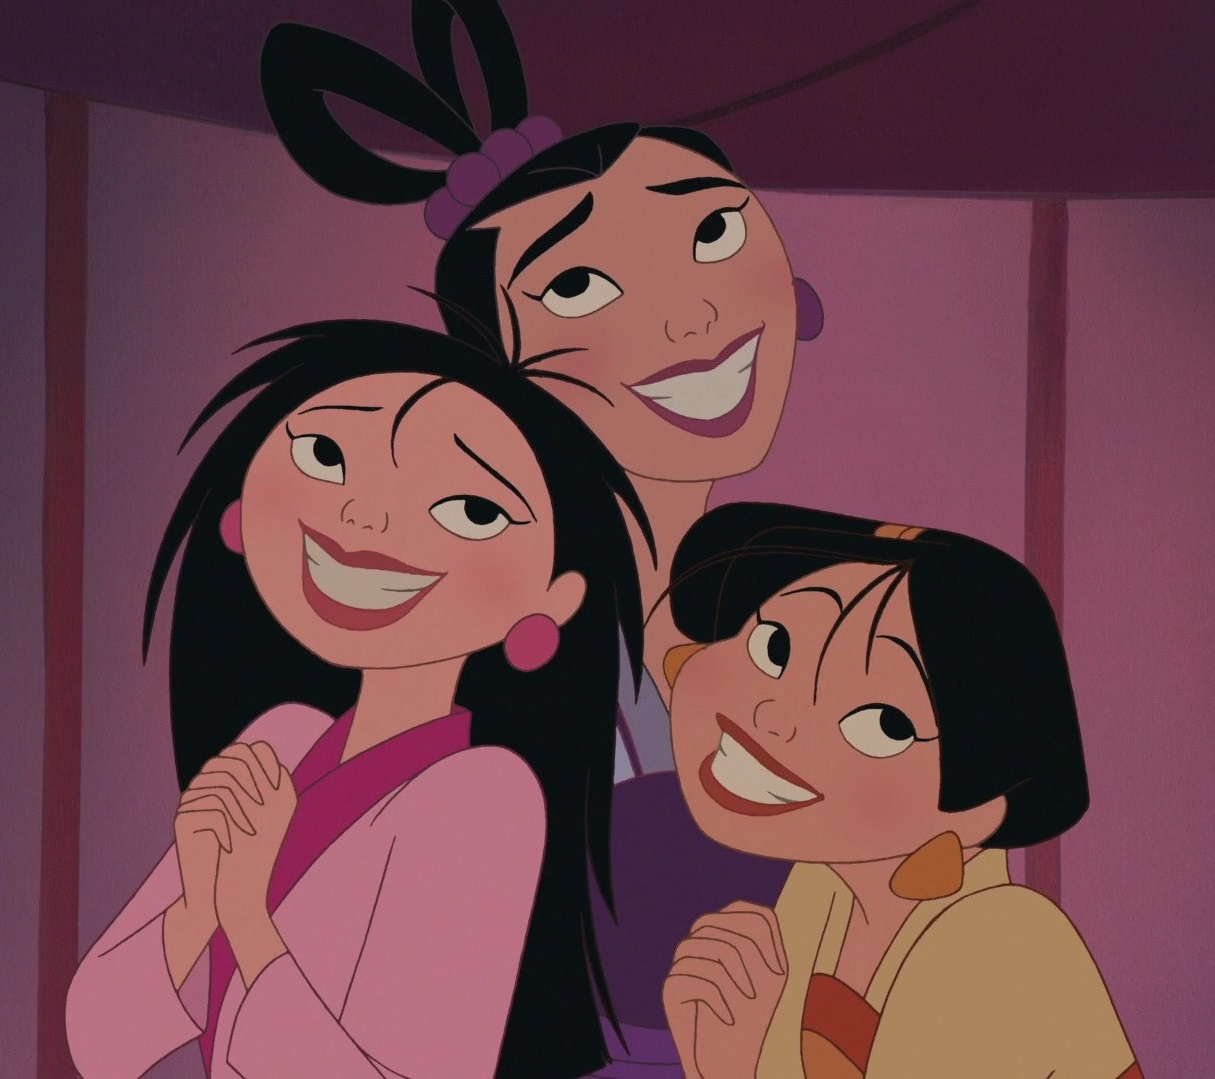 Ting Ting Su And Mei Disney Wiki Fandom